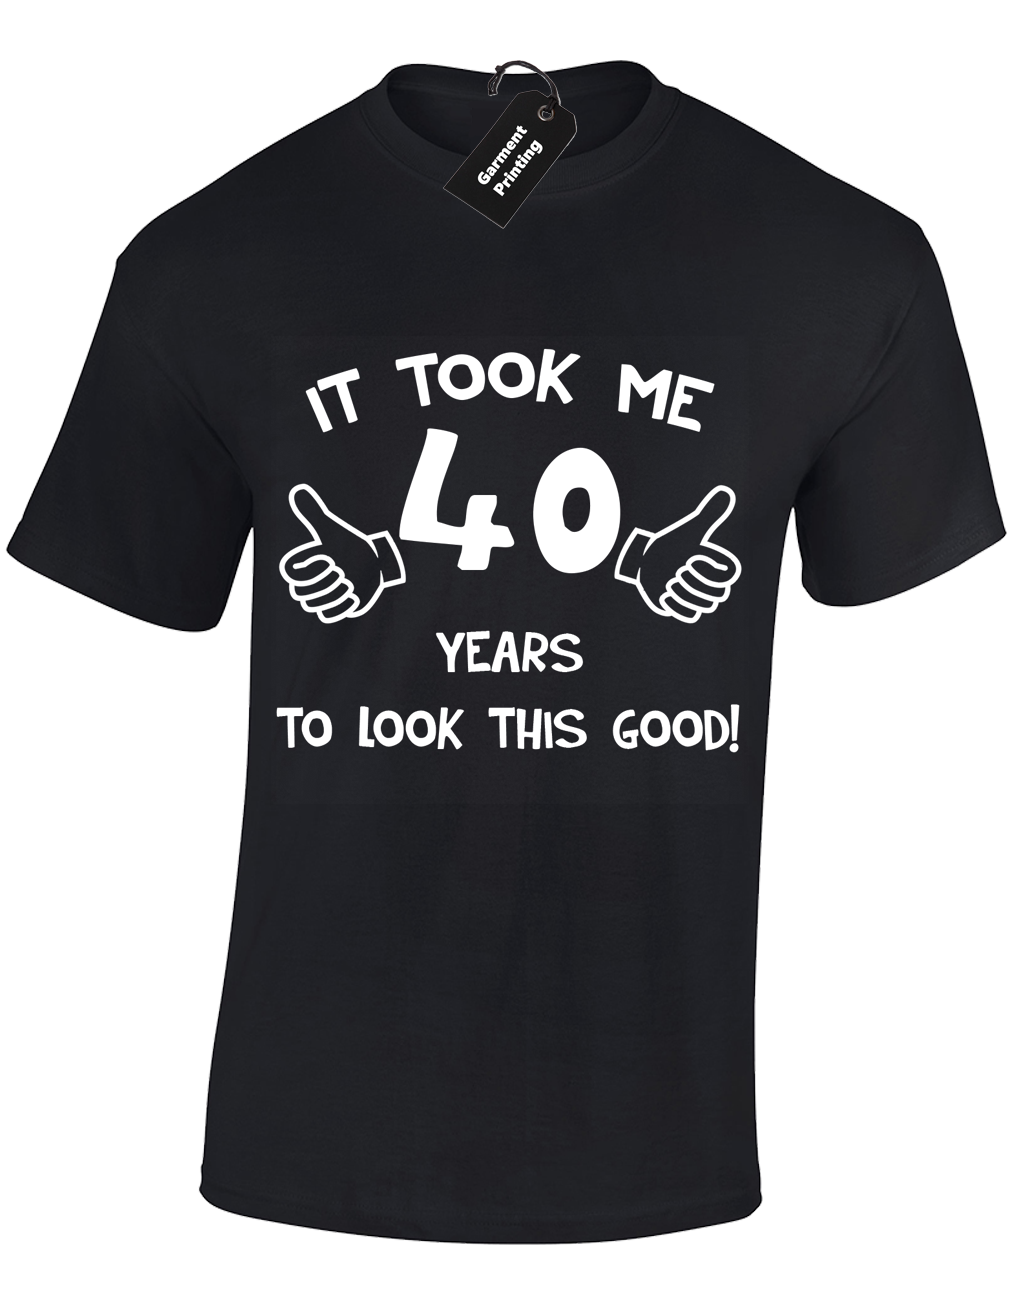 IT TOOK ME 40 YEARS <font><b>MENS</b></font> T SHIRT FUNNY GIFT <font><b>IDEA</b></font> TOP PRESENT <font><b>40TH</b></font> <font><b>BIRTHDAY</b></font> Gift Print T-shirt,Hip Hop Tee Shirt,2019 hot tees image